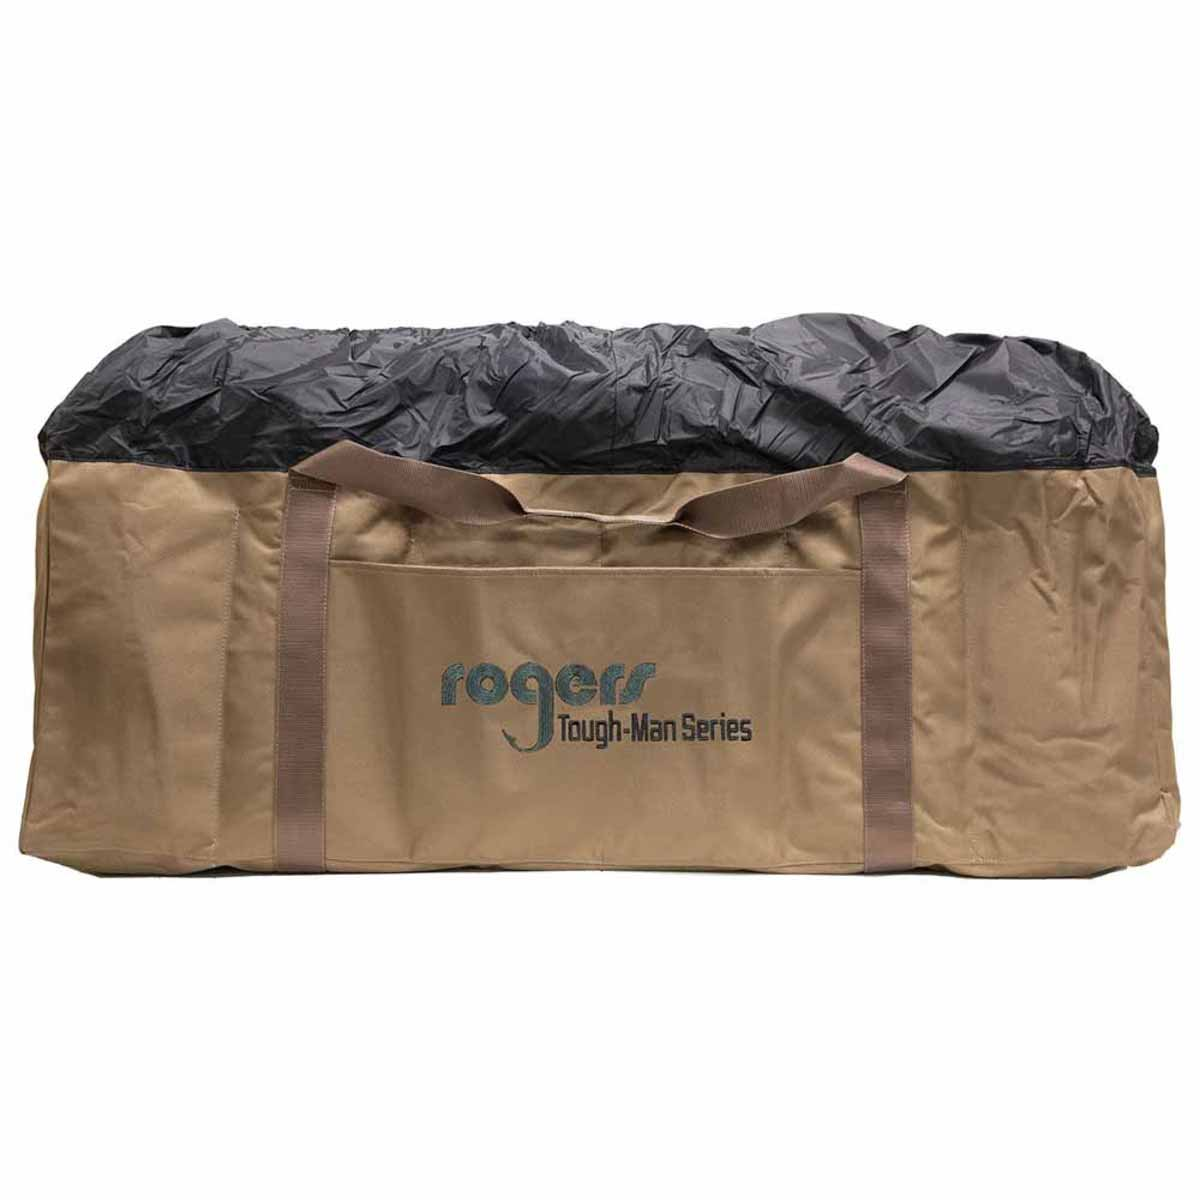 Rogers 12 Slot Full Body Duck Bag with Drawstring Closure_1.jpg